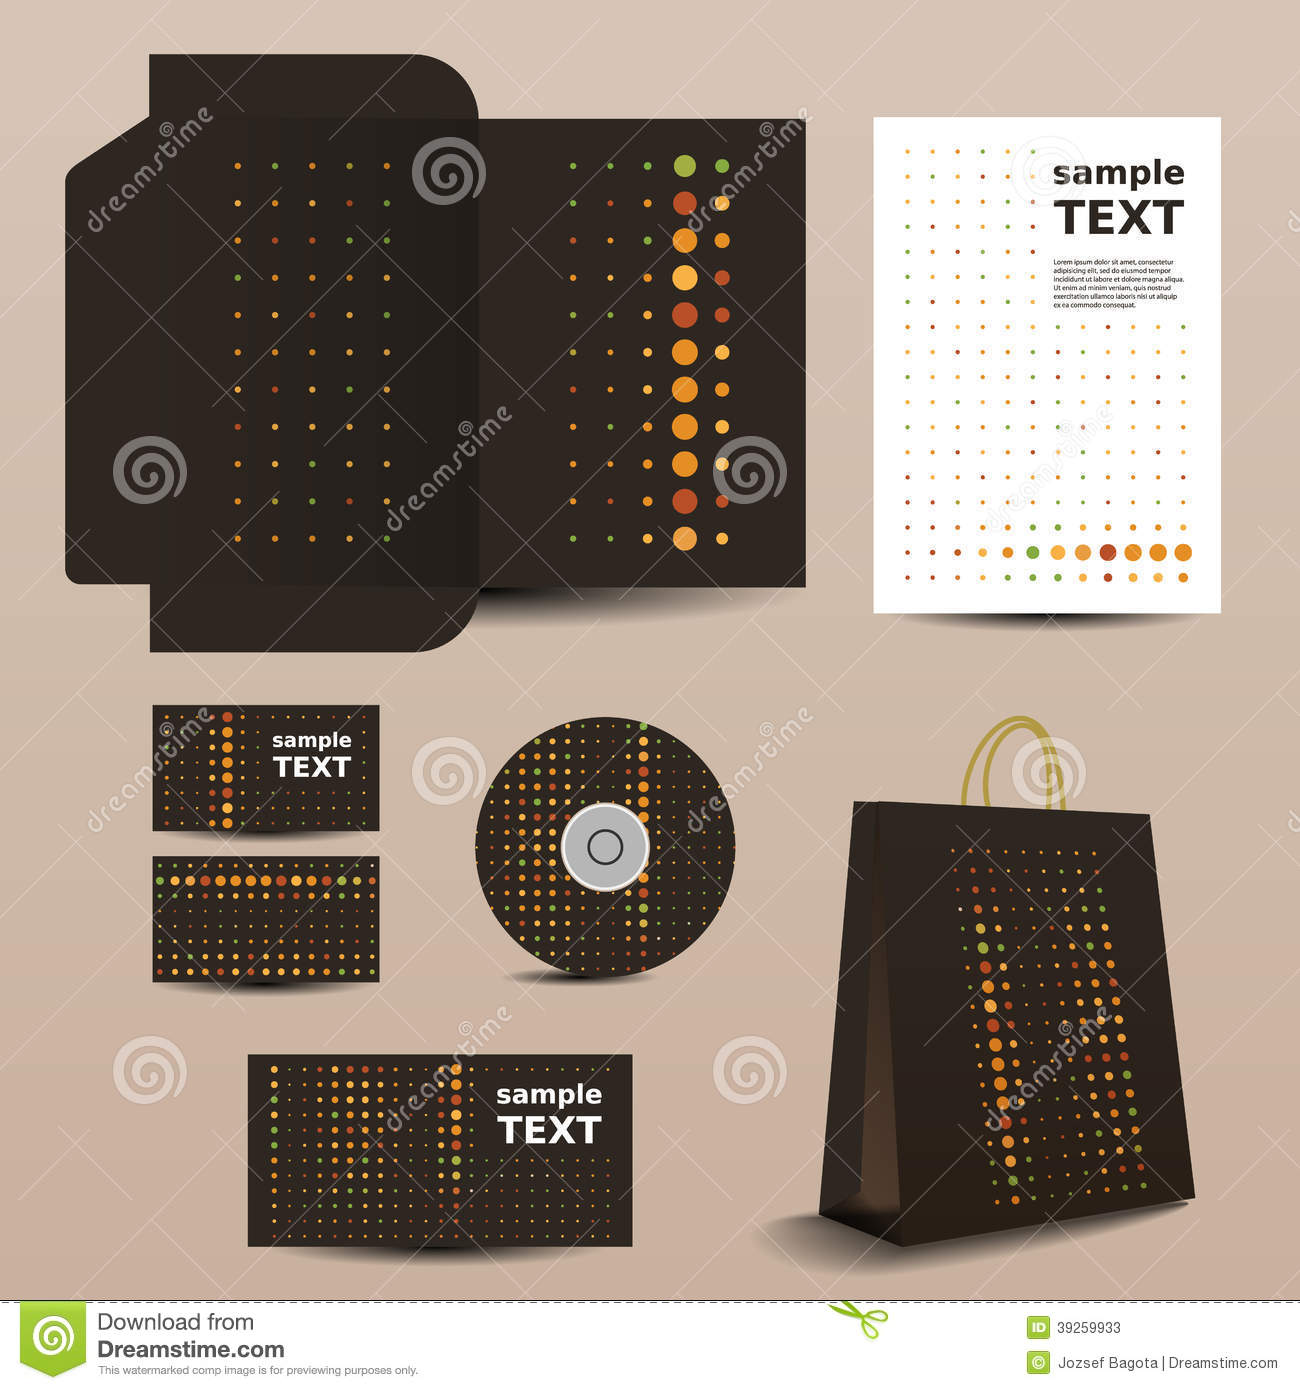 Stationery Template Corporate Image Design Stock Vector